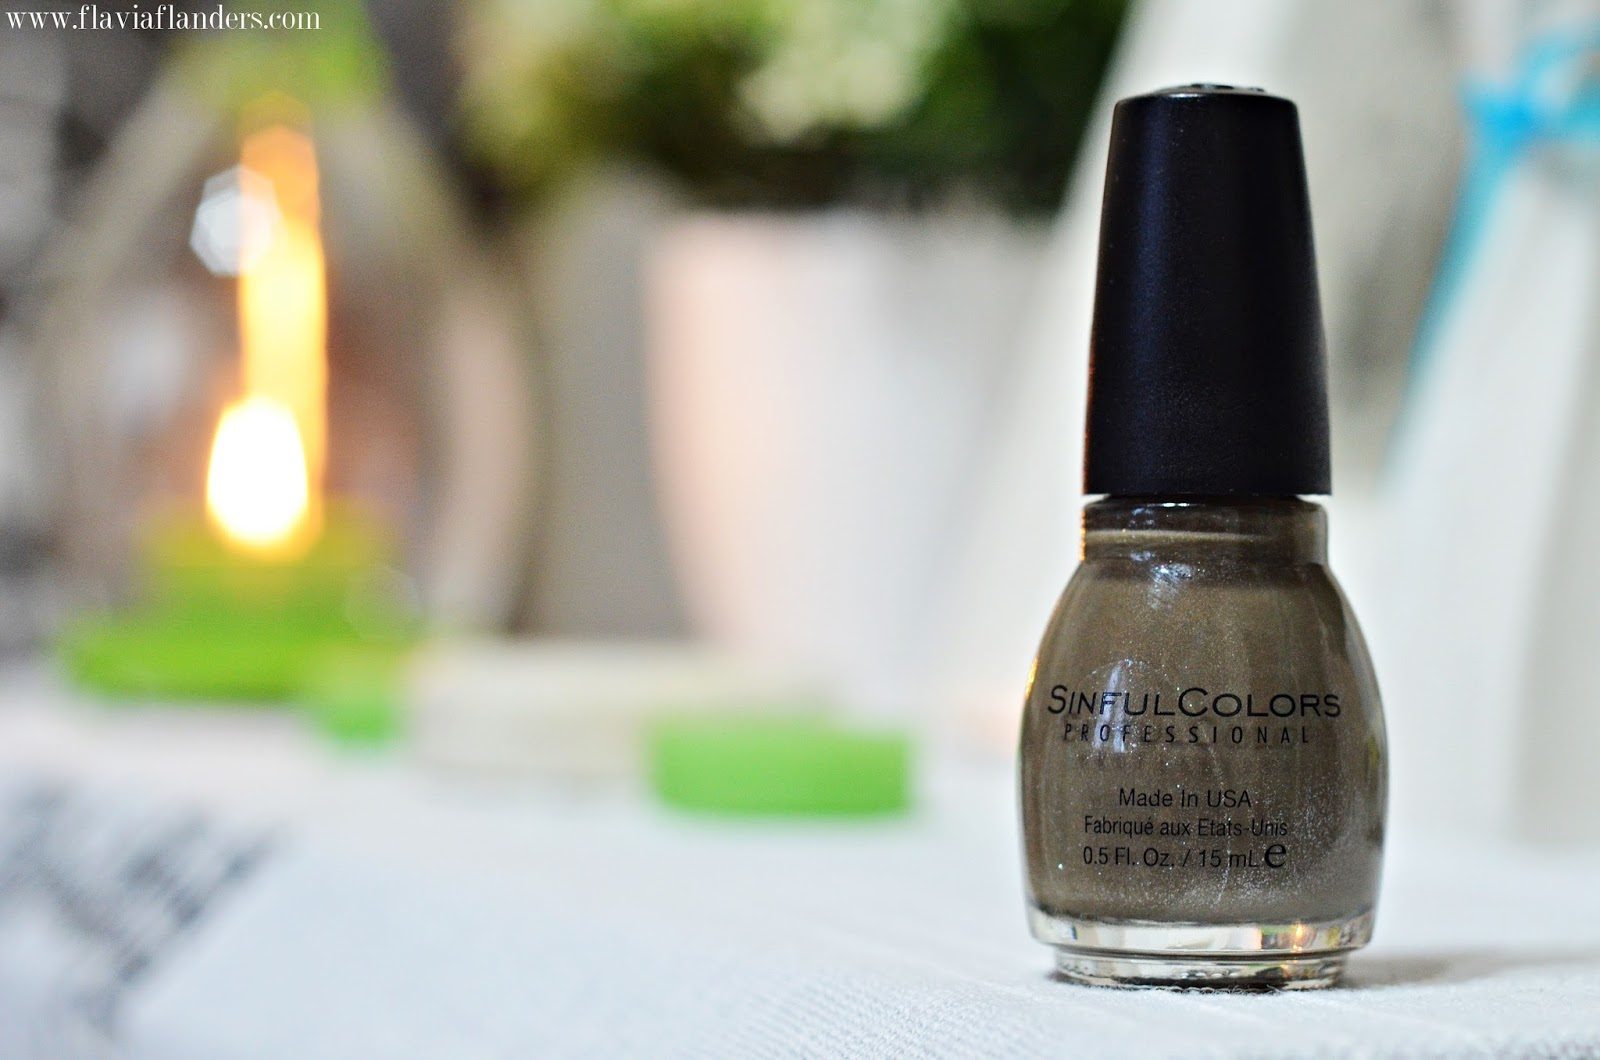 sinful, sinful colors, sinfulcolors, taupe it off, sinful colors taupe it off, beauty, beauty blogger, beauty blogger argentina, beauty guru, beauty guru argentina, flavia flanders, nail art, nail polish, nails, reseña, review, sinful, sinful colors, you can call me flanders,